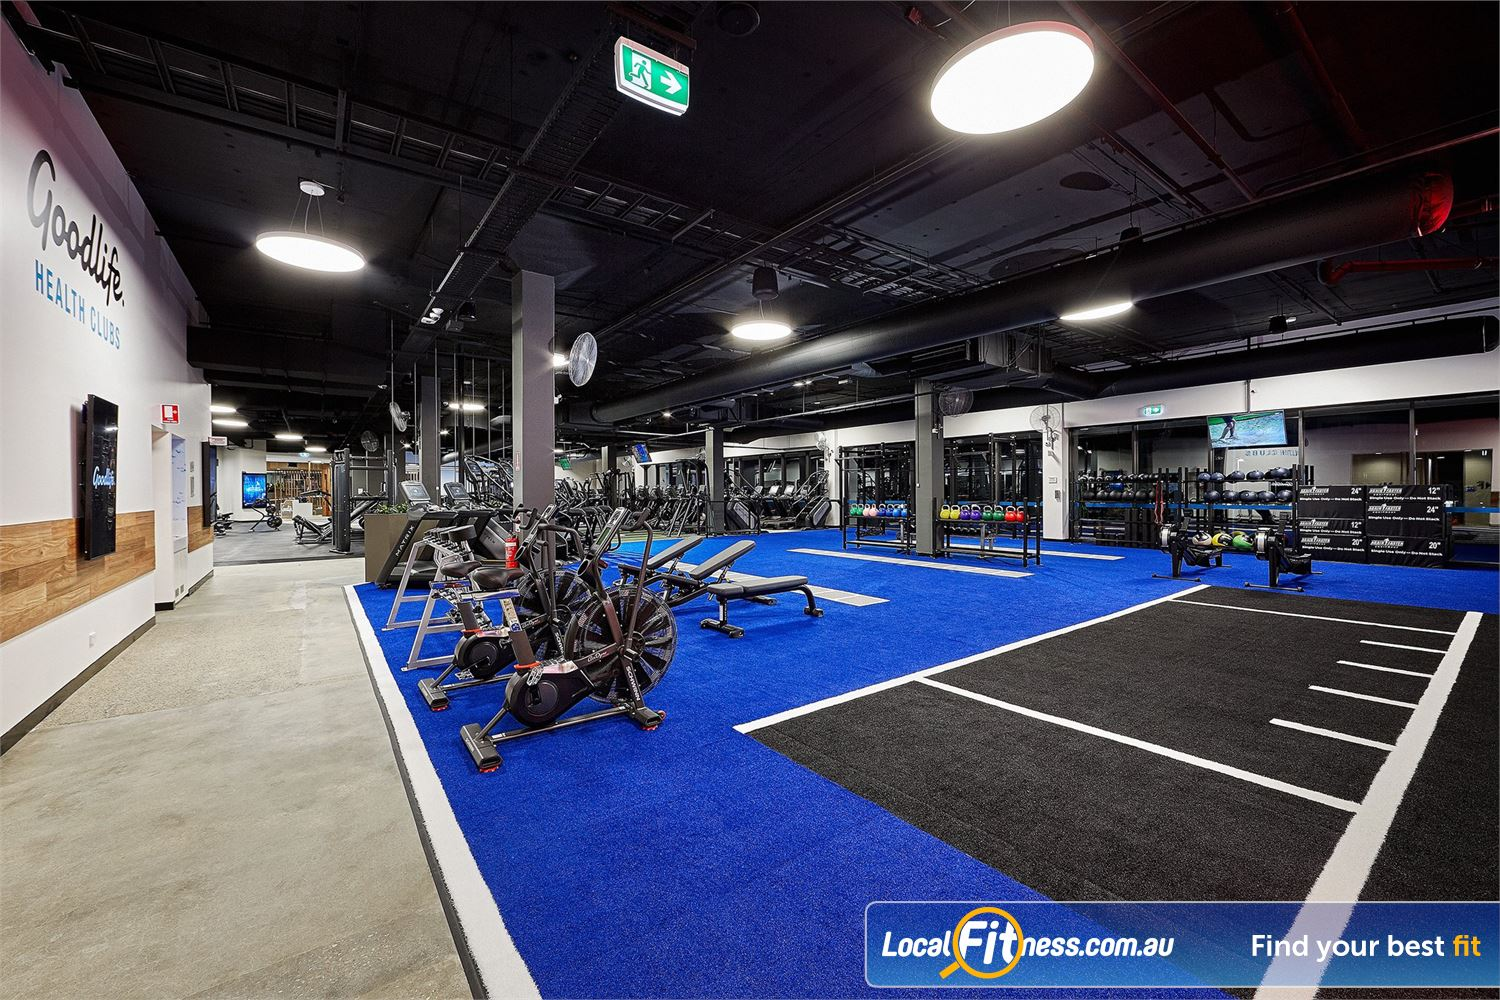 Goodlife Health Clubs West Lakes We bring the latest training methods inc. Functional Training, HIIT training and more to West Lakes.<br />